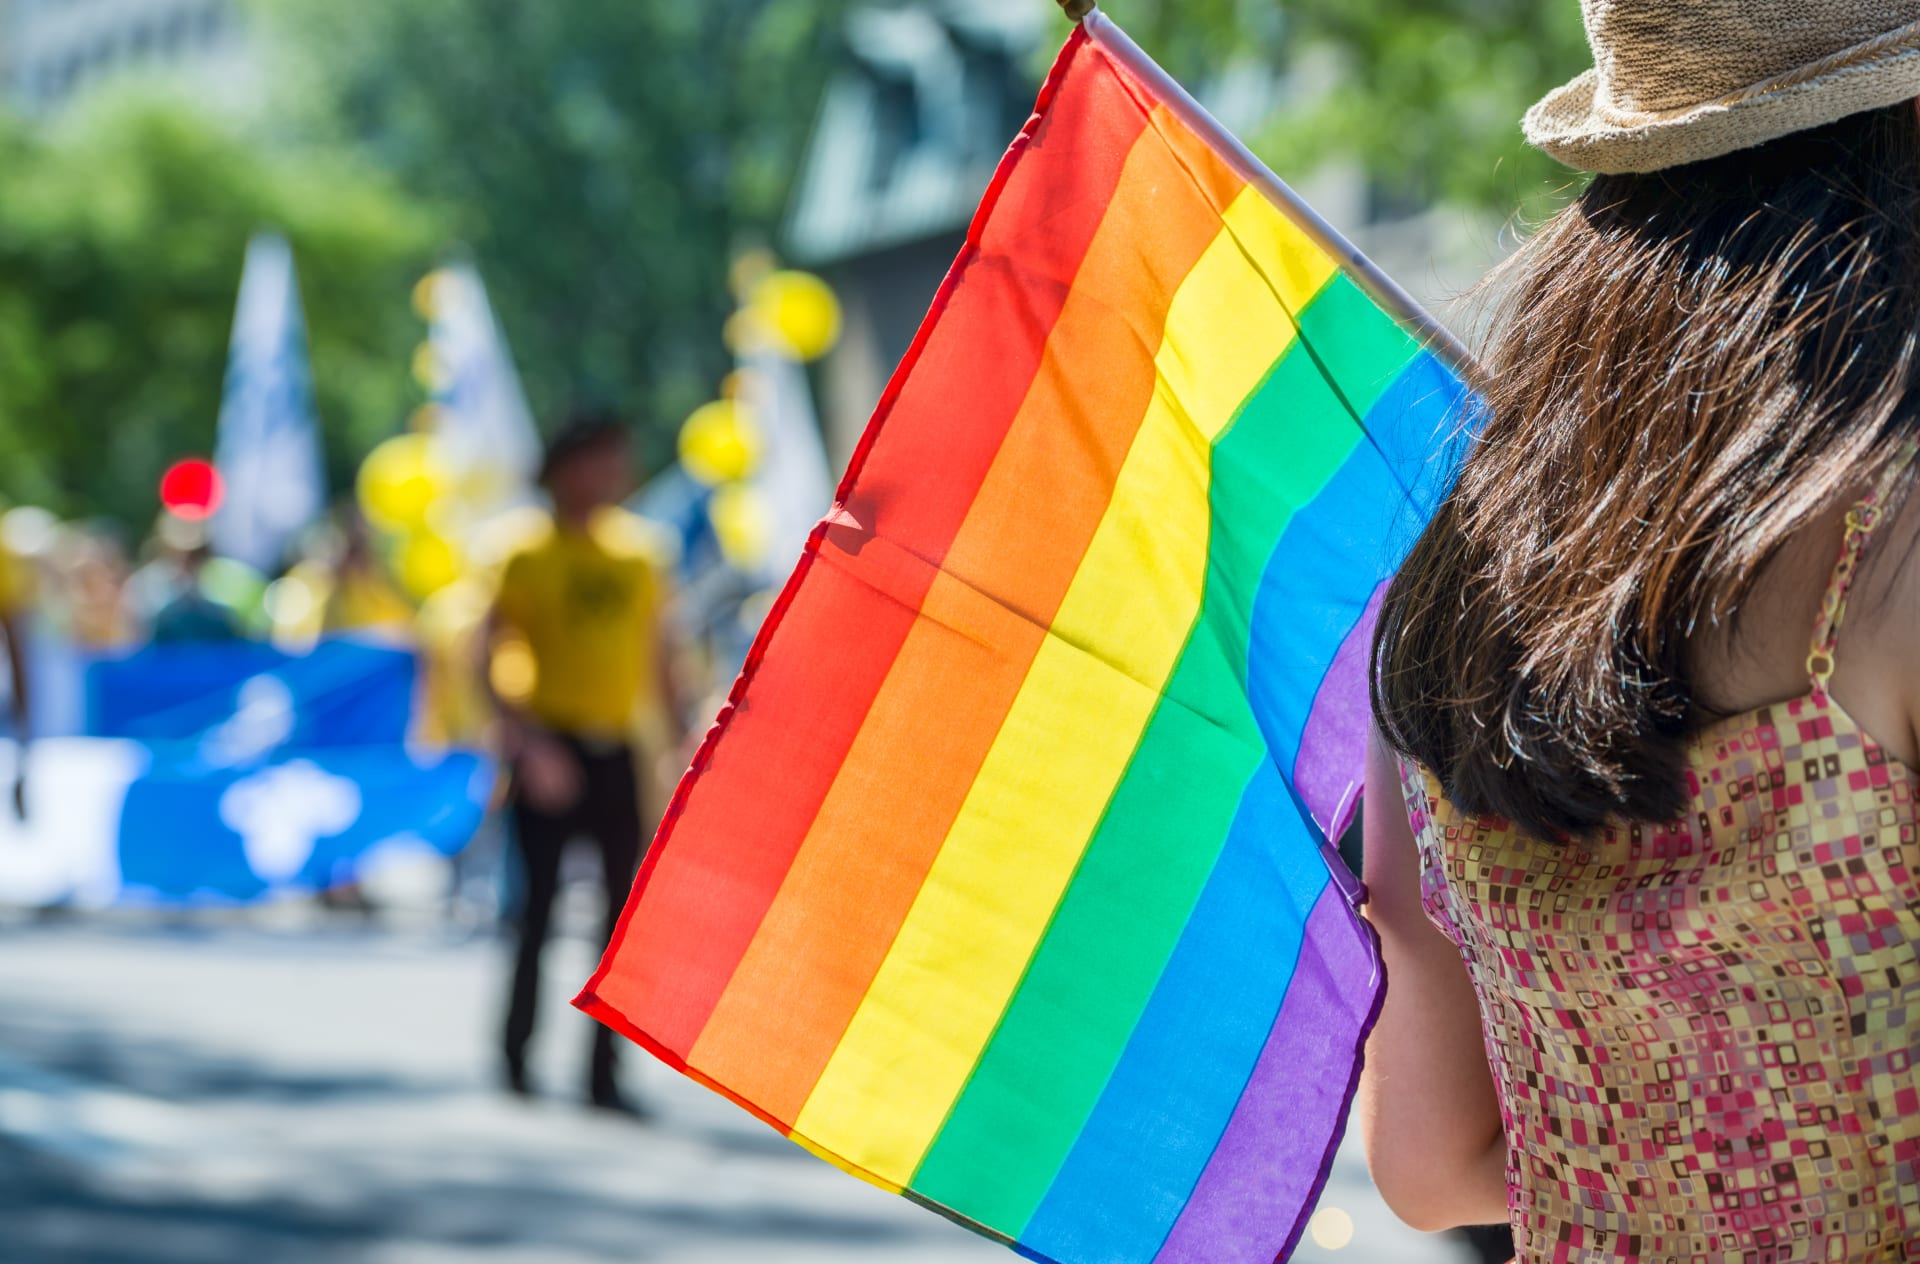 lgbt history month pride lesbian 260nw 1492658321 dtujdx